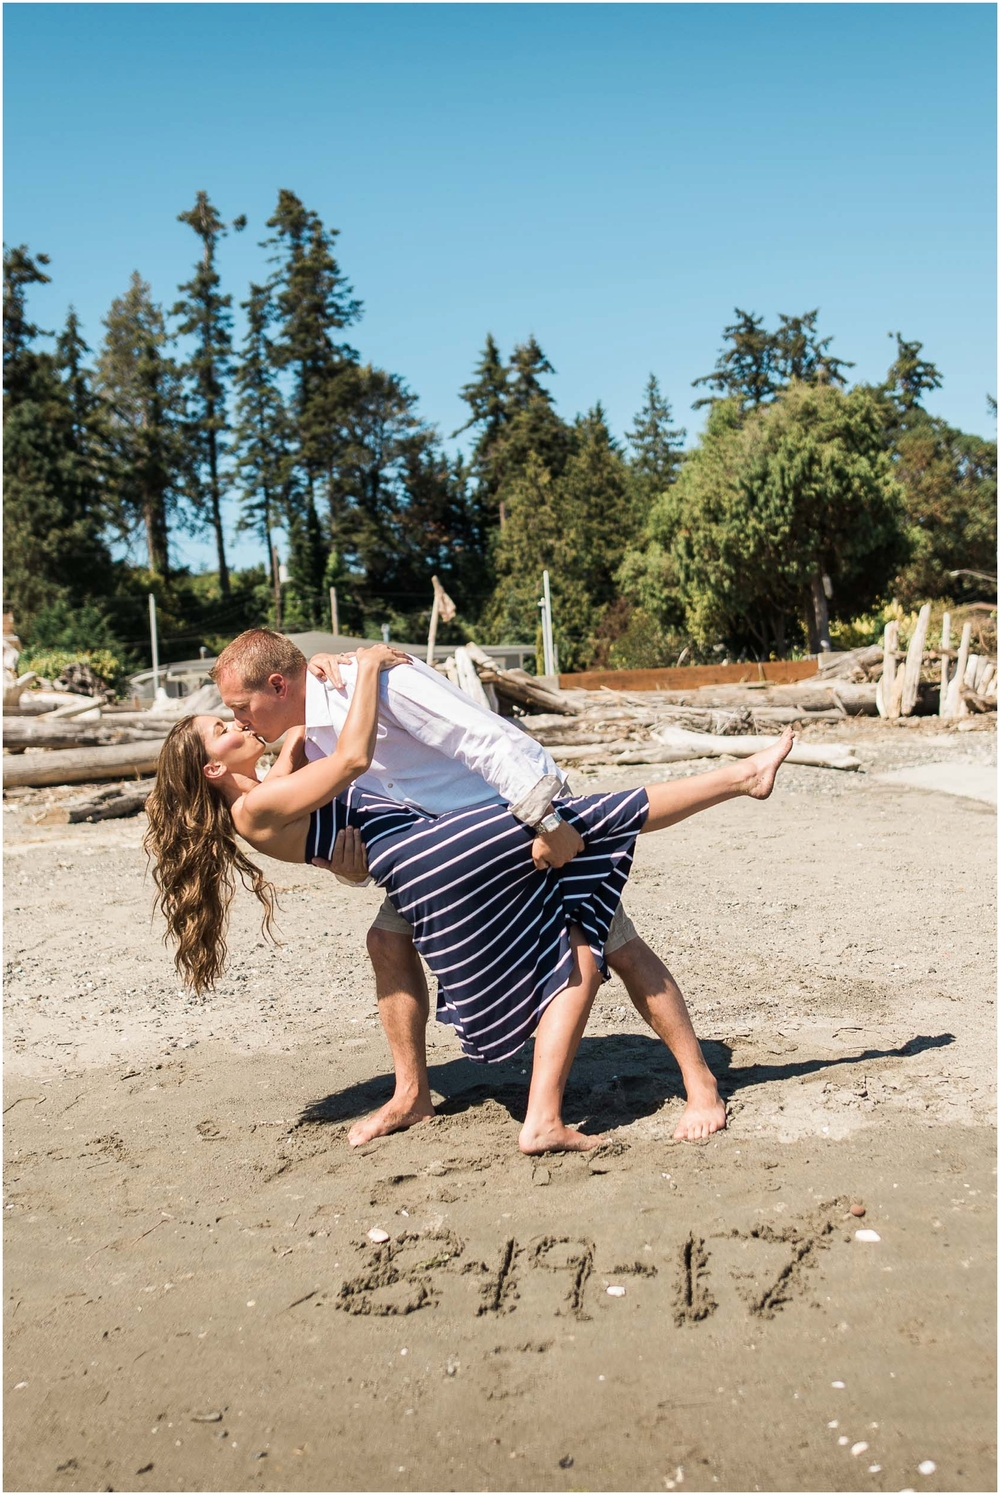 Camano island sandy beach engagement. Driftwood. Bride. Groom. Diamonds. PNW. Seattle Wedding Photographer